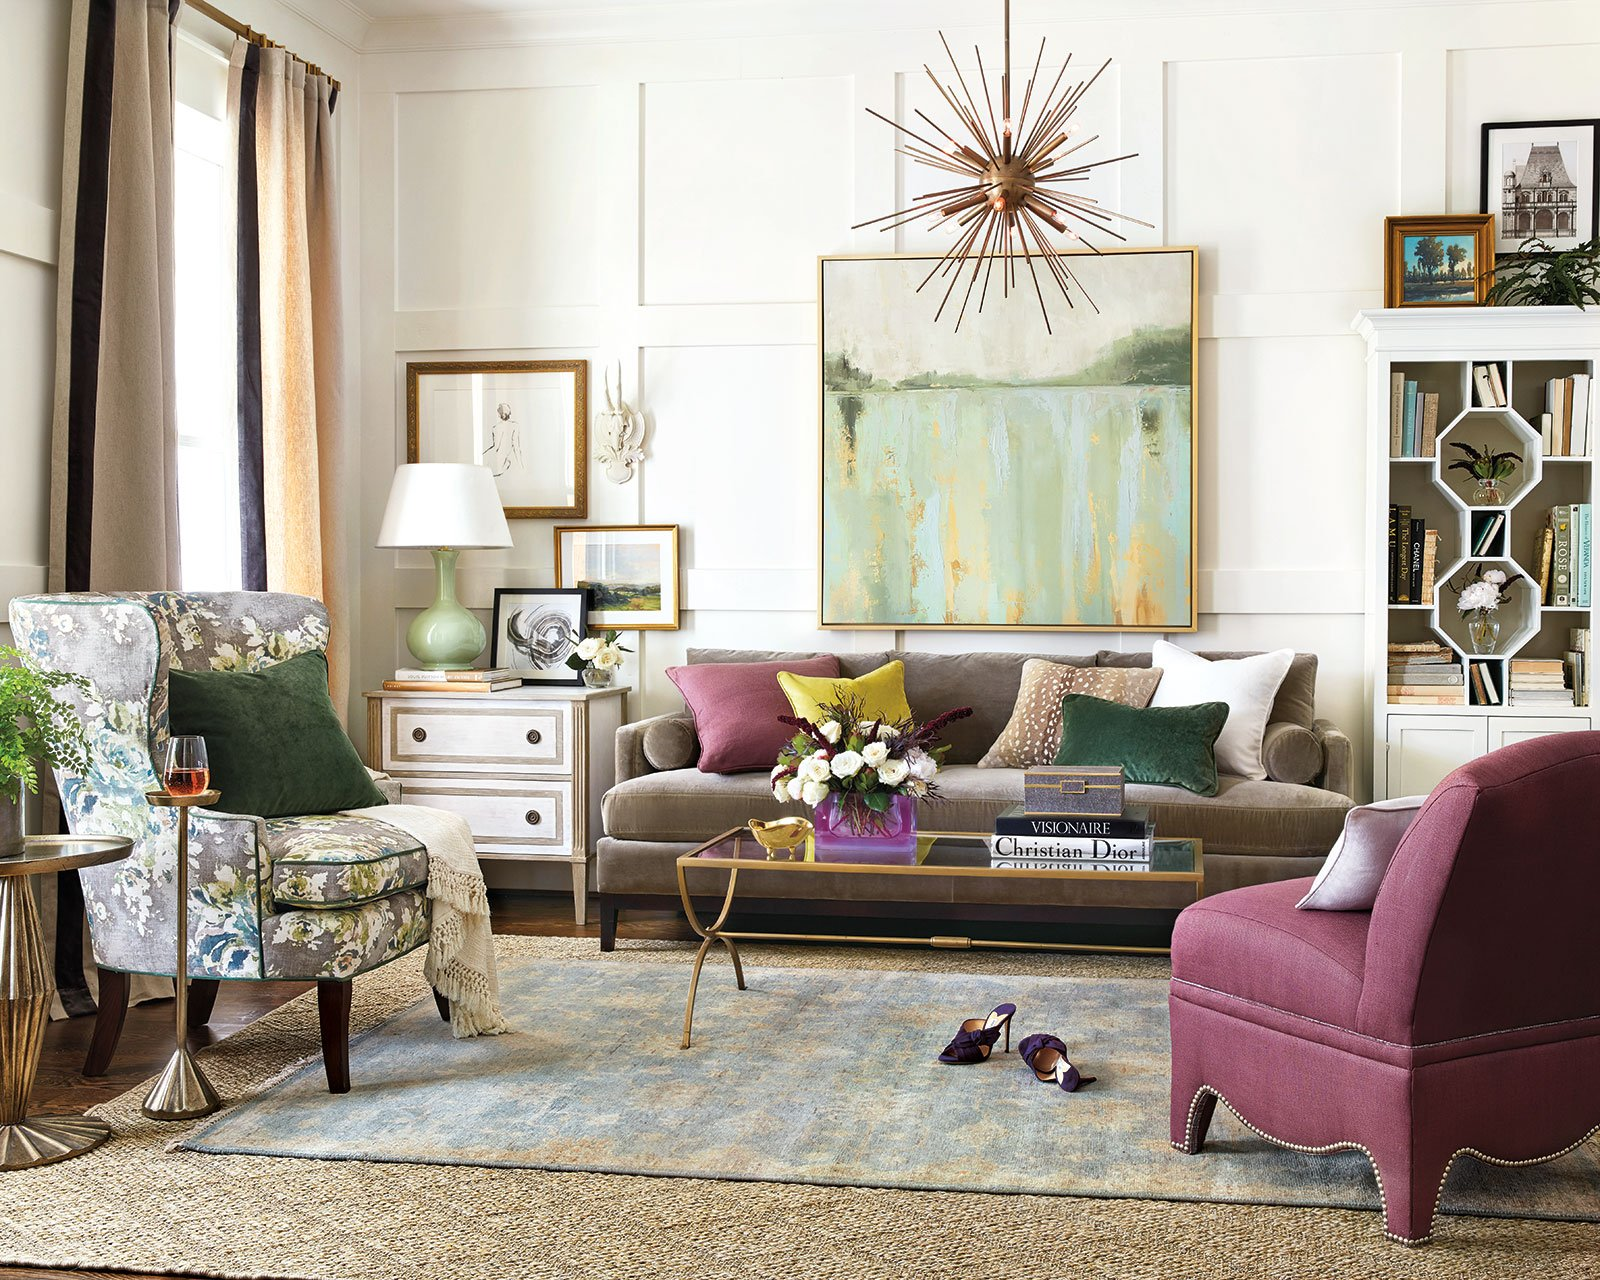 Jewel Tones: Make Any Room a Gem!